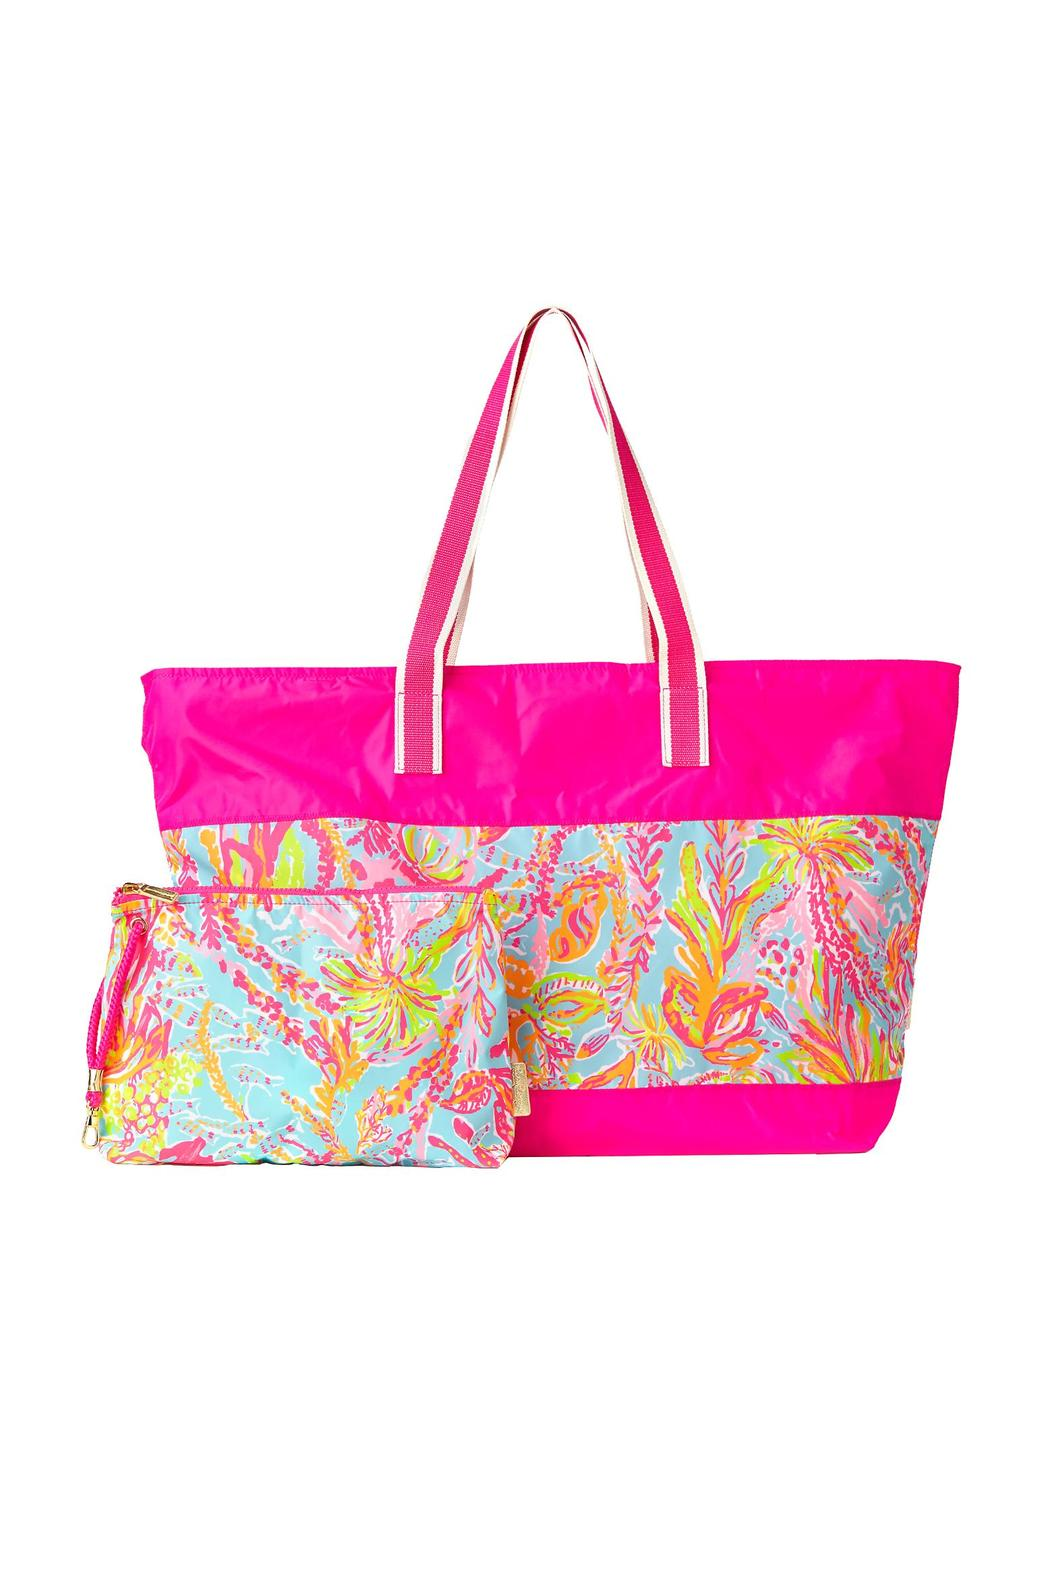 Lilly Pulitzer Sail Away Beach Tote from Sandestin Golf  : lillypulitzer sail away beach tote bag multicolor 82ea9034l from www.shoptiques.com size 1050 x 1575 jpeg 108kB